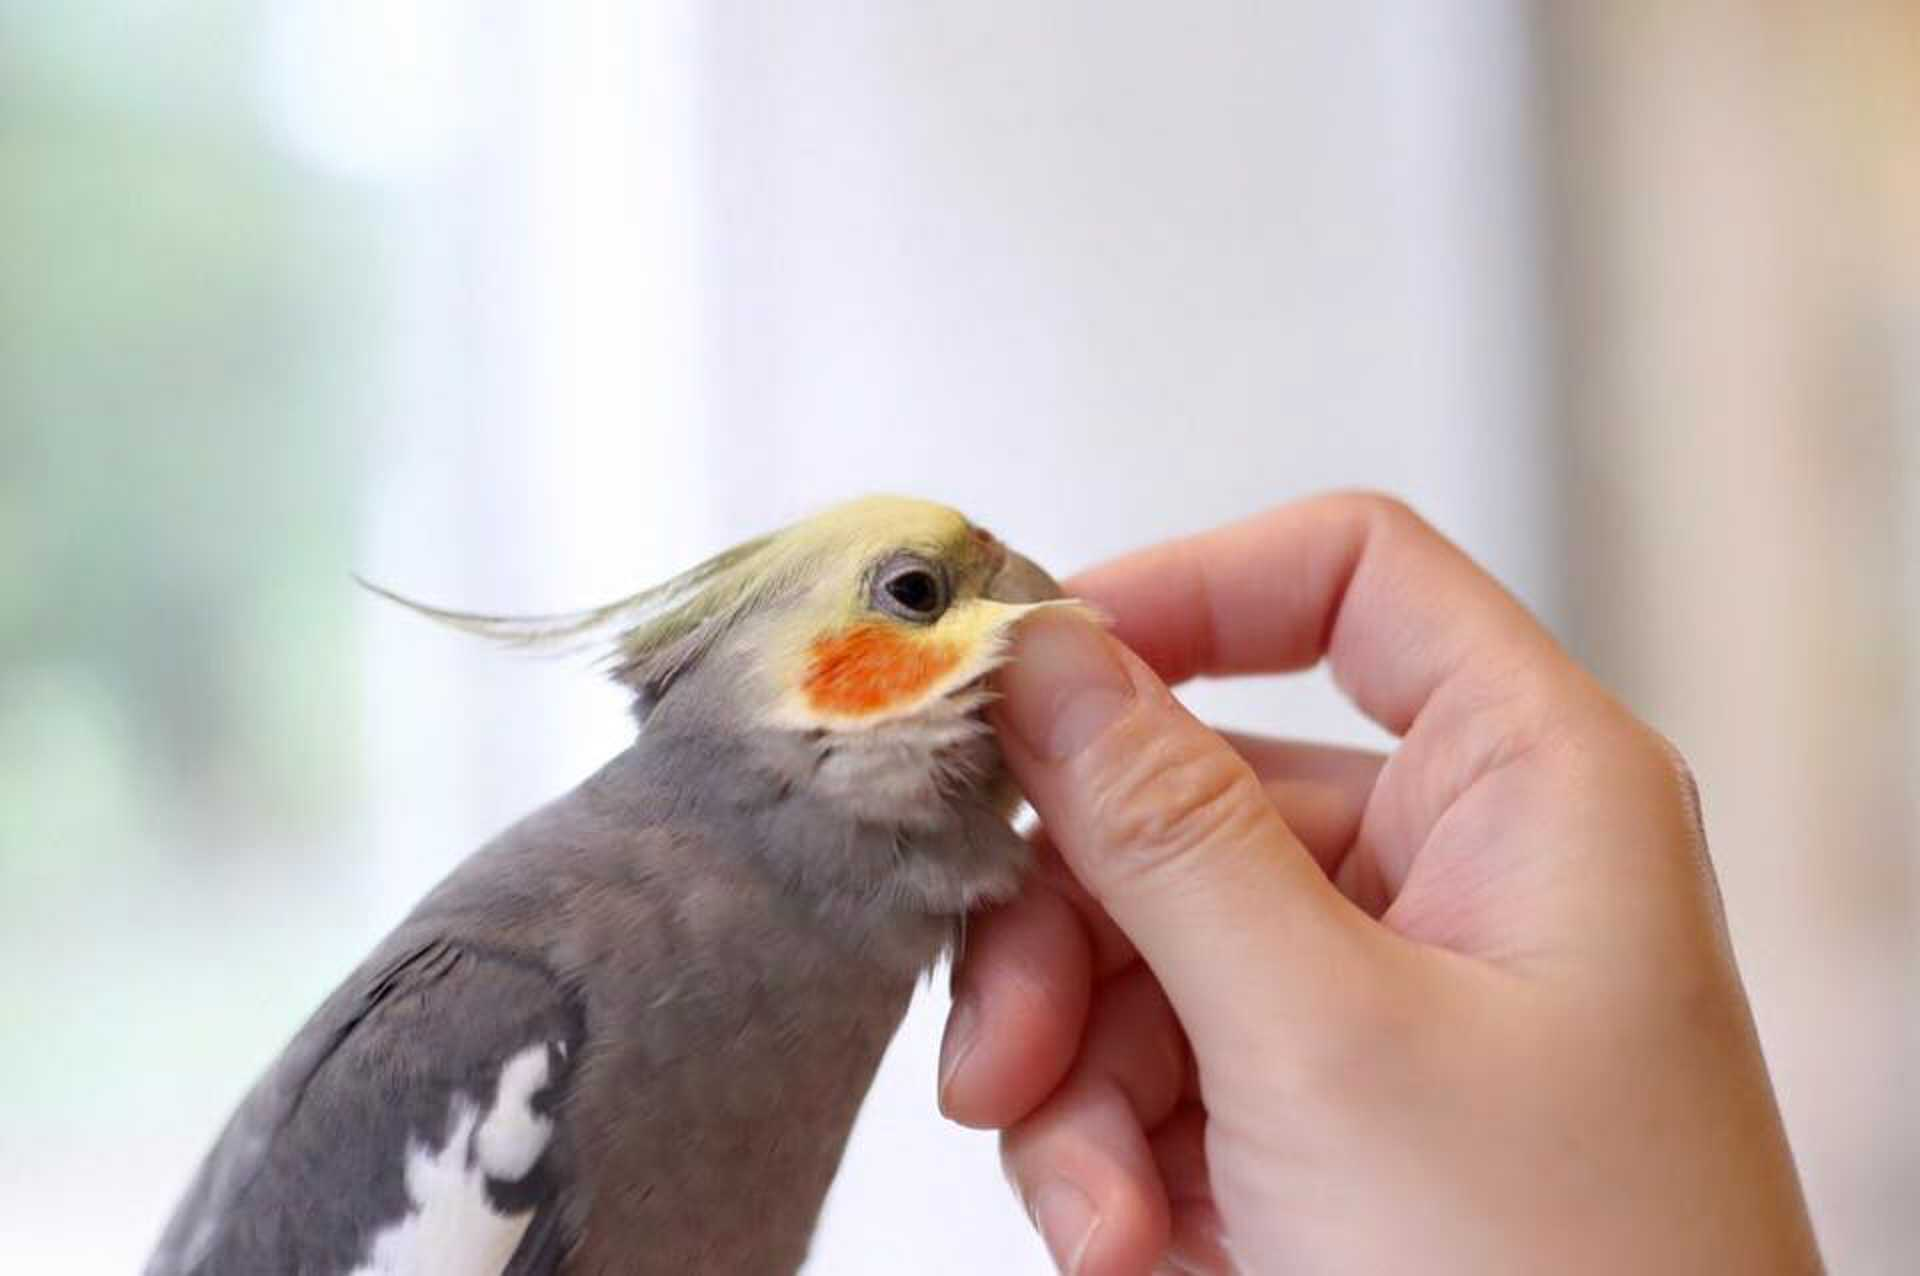 Your chance to get upclose with the birds!